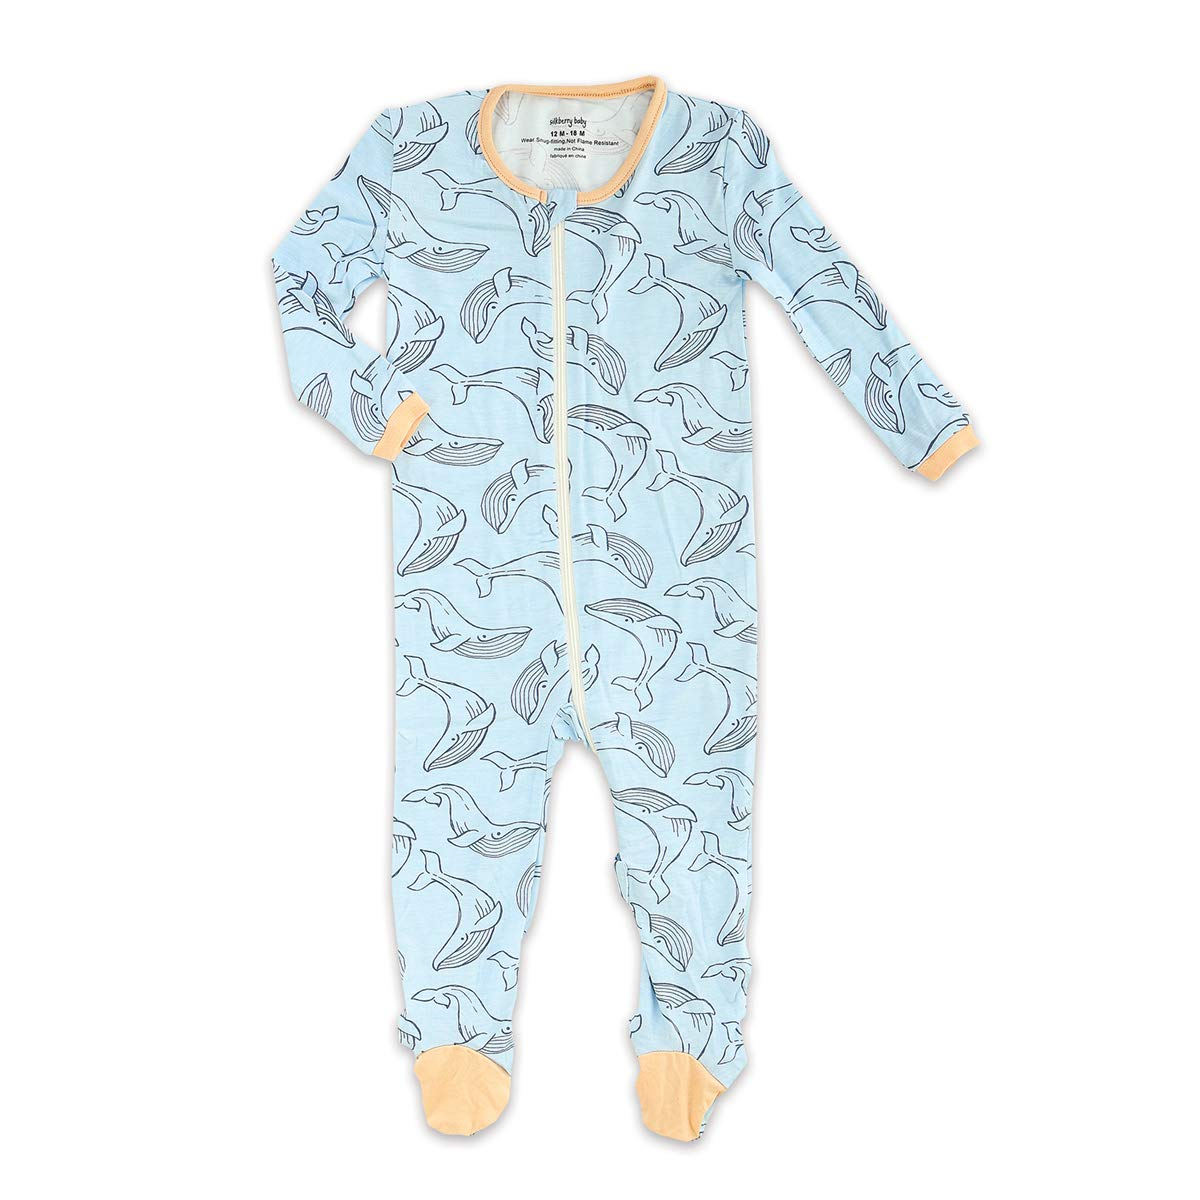 Boy /& Unisex Silkberry Baby Printed Bamboo Footie with Easy Dressing Zipper